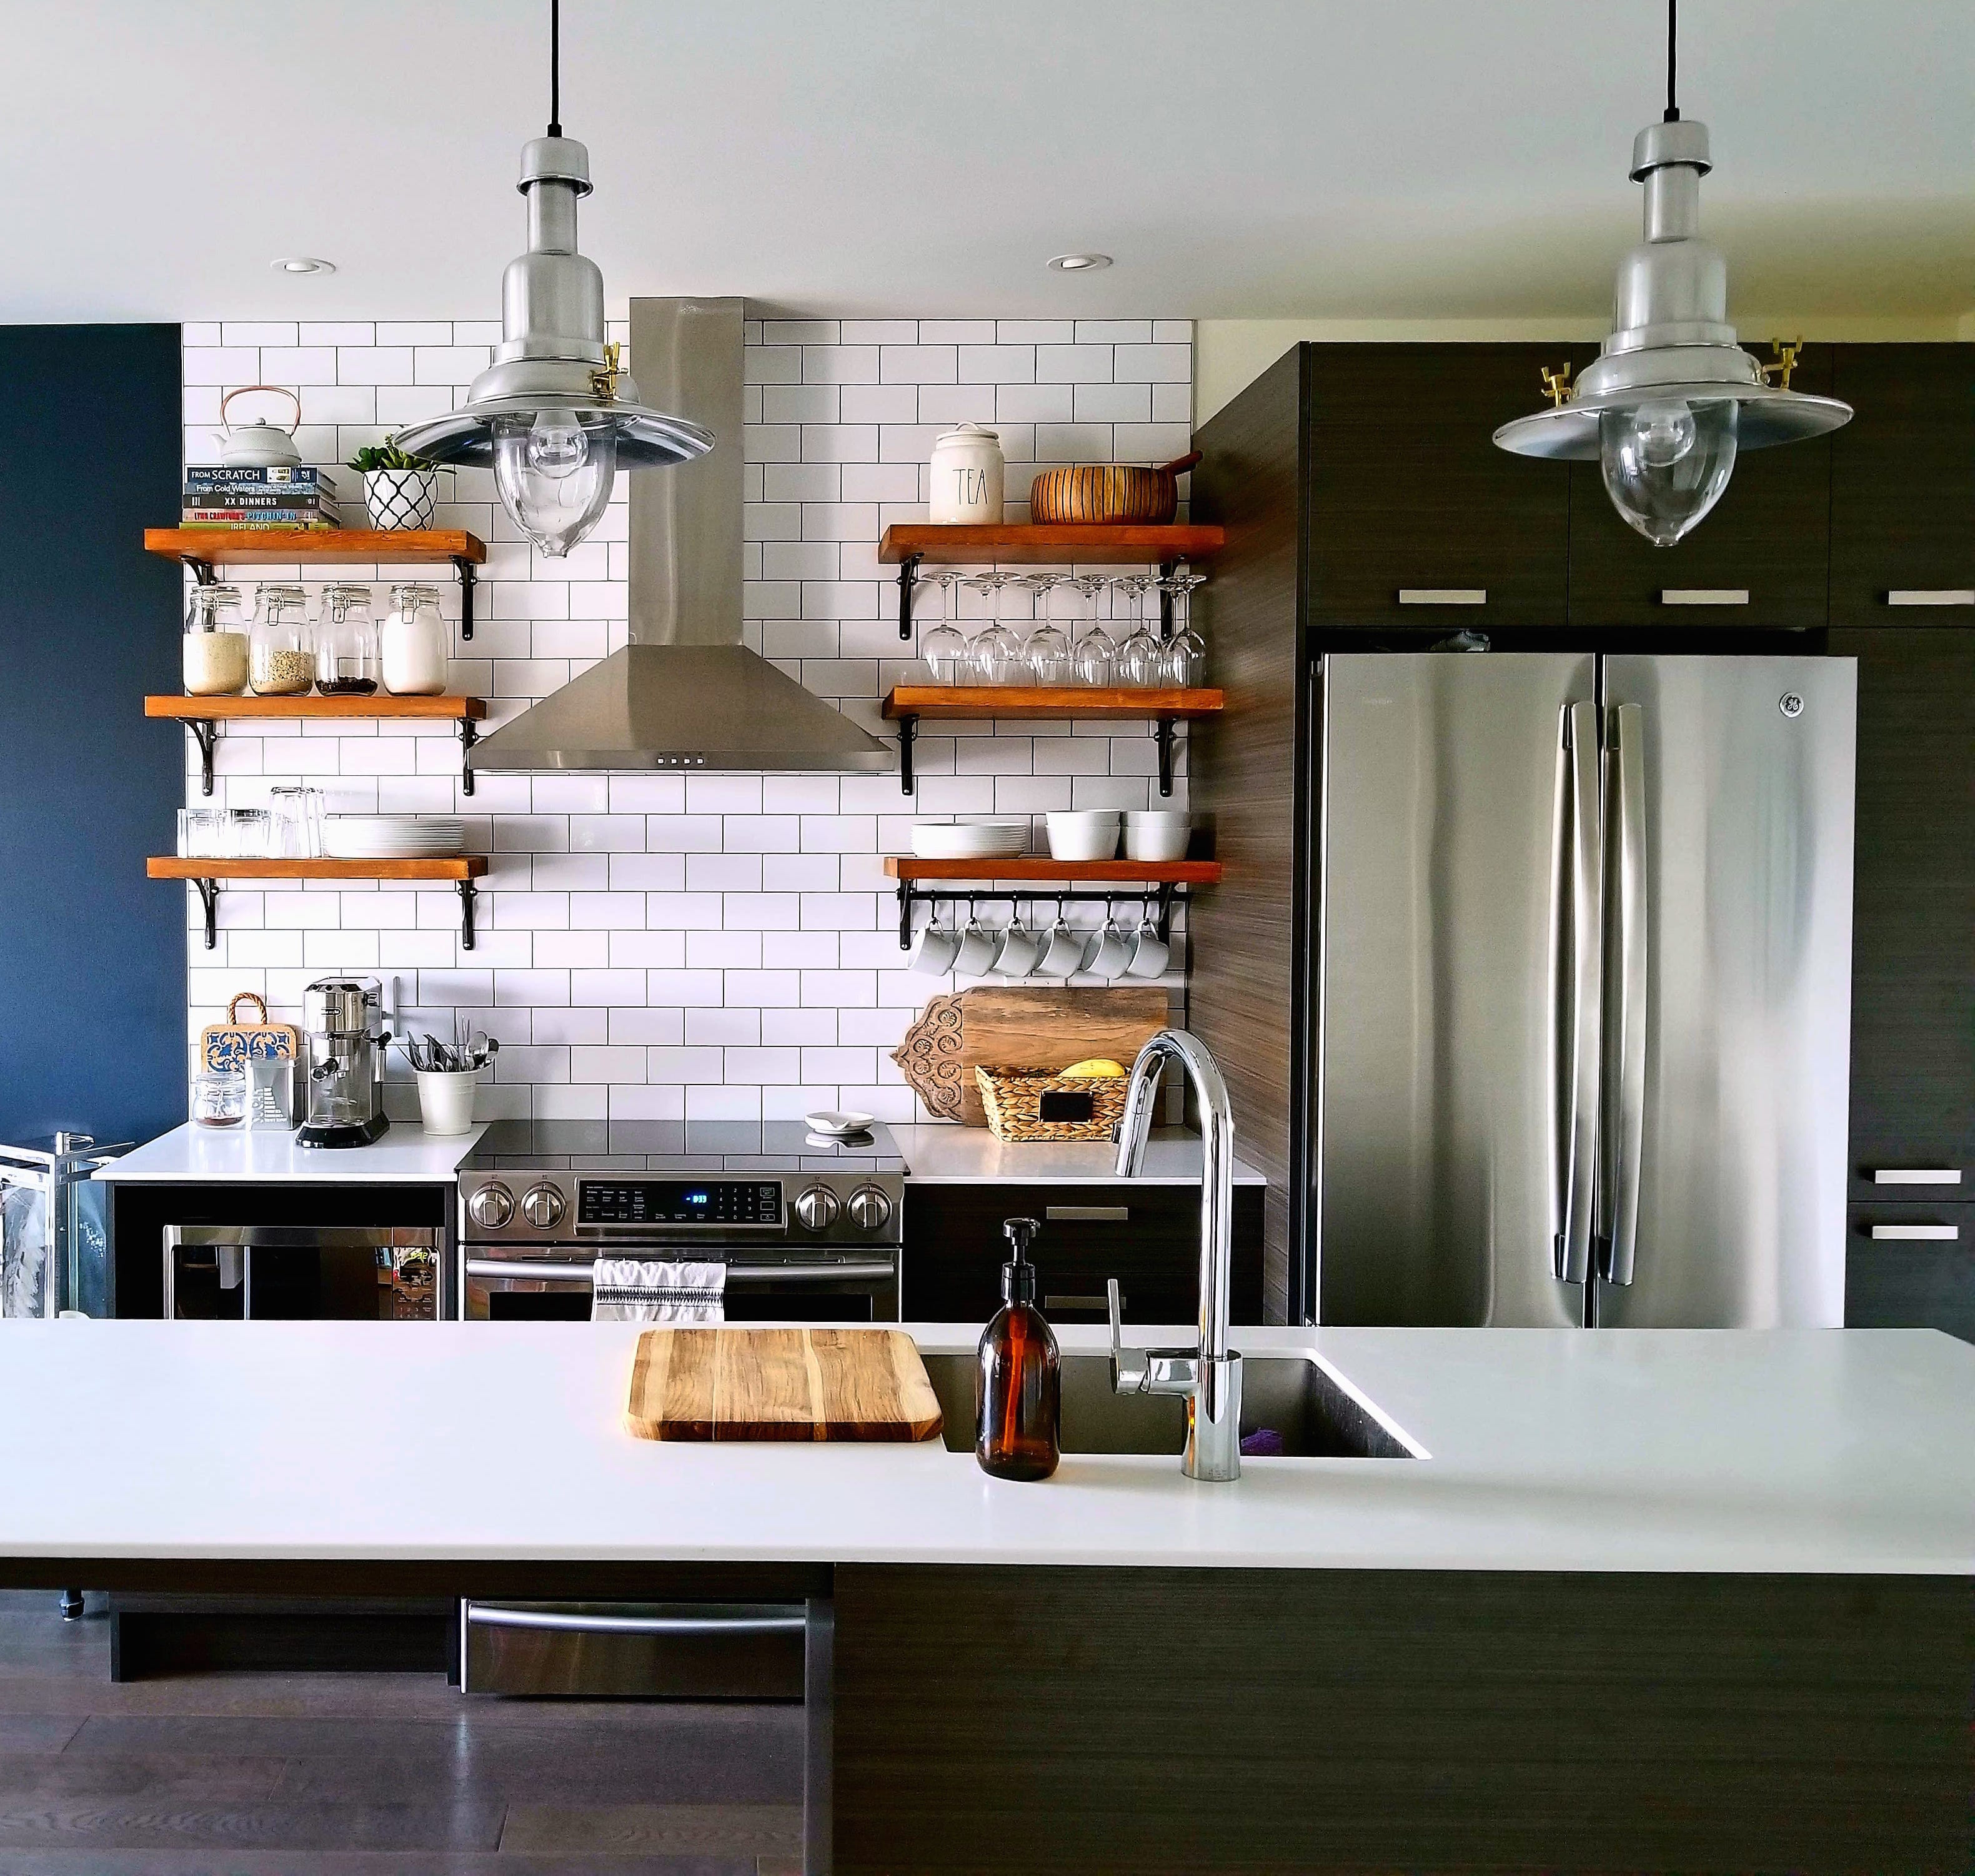 Subway tiles with open shelves